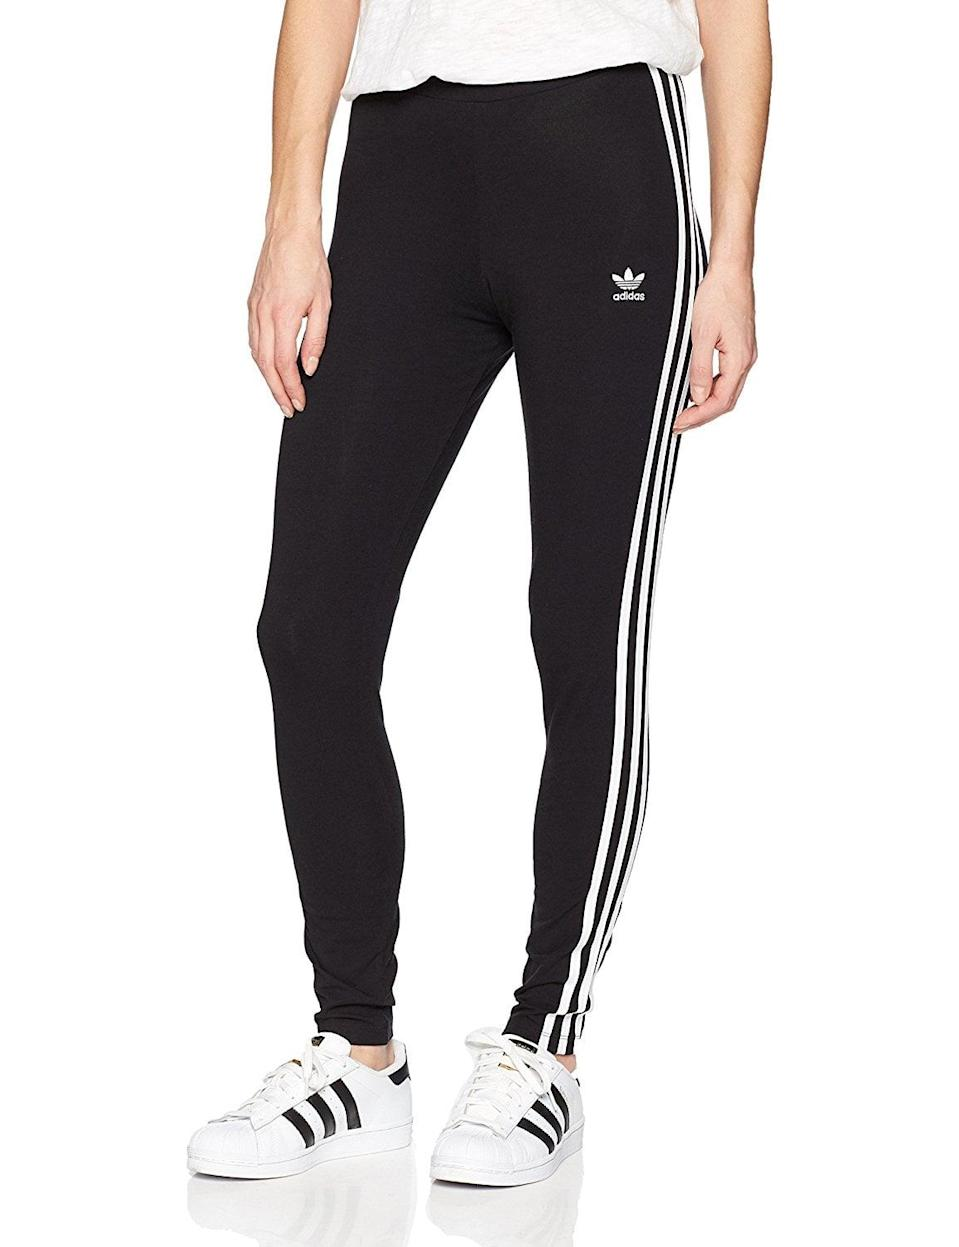 """<p>Is it any surprise these classic <a href=""""https://www.popsugar.com/buy/adidas-Originals-Women-3-Stripes-Leggings-365701?p_name=adidas%20Originals%20Women%27s%203-Stripes%20Leggings&retailer=amazon.com&pid=365701&price=40&evar1=fit%3Aus&evar9=45278643&evar98=https%3A%2F%2Fwww.popsugar.com%2Ffitness%2Fphoto-gallery%2F45278643%2Fimage%2F45278649%2Fadidas-Originals-Women-3-Stripes-Leggings&list1=shopping%2Camazon%2Cworkout%20clothes%2Cleggings%2Cfitness%20gear&prop13=mobile&pdata=1"""" class=""""link rapid-noclick-resp"""" rel=""""nofollow noopener"""" target=""""_blank"""" data-ylk=""""slk:adidas Originals Women's 3-Stripes Leggings"""">adidas Originals Women's 3-Stripes Leggings</a> ($40) have superhigh ratings? One customer said, """"I bought 2 pairs of these because they are my favorite pants in the whole world.""""</p>"""